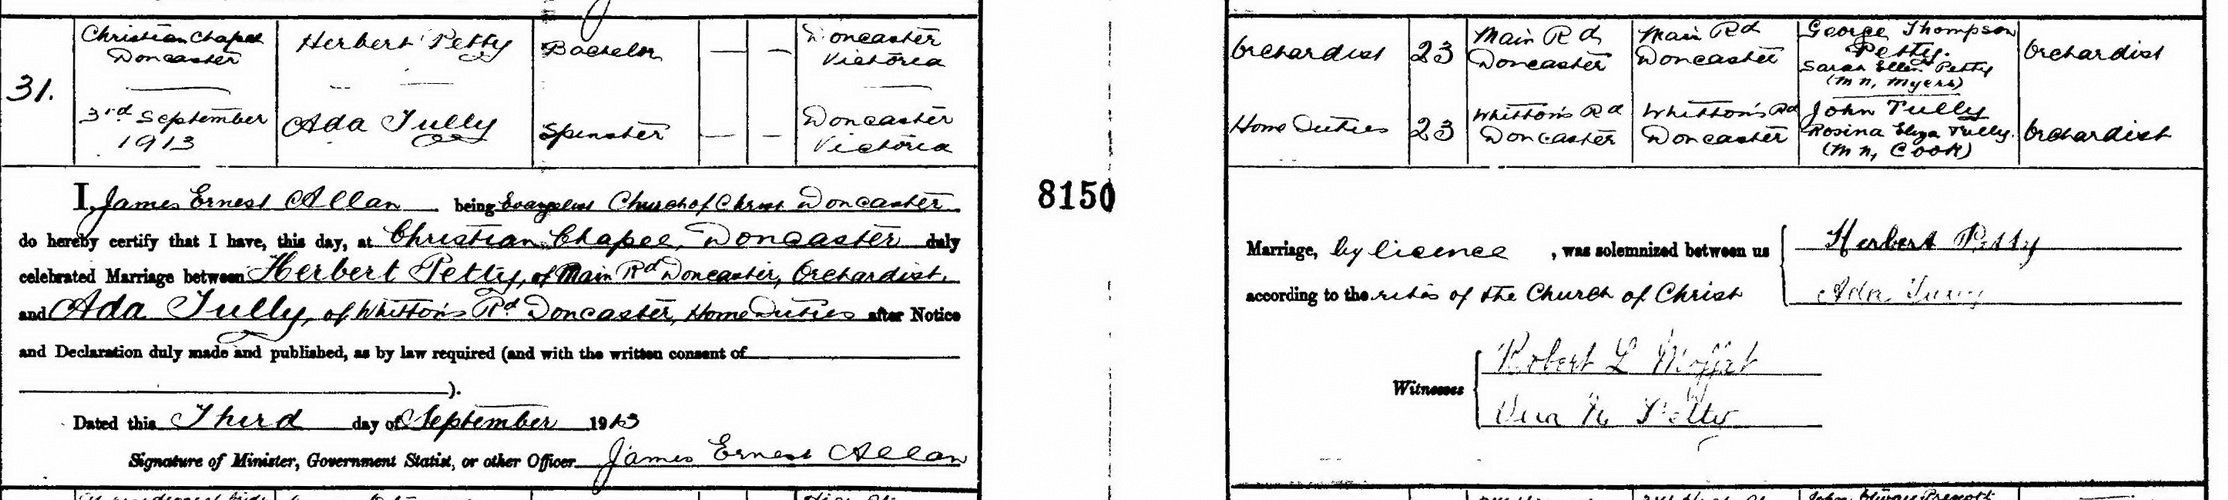 Herbert Petty and Ada Tully marriage certificate